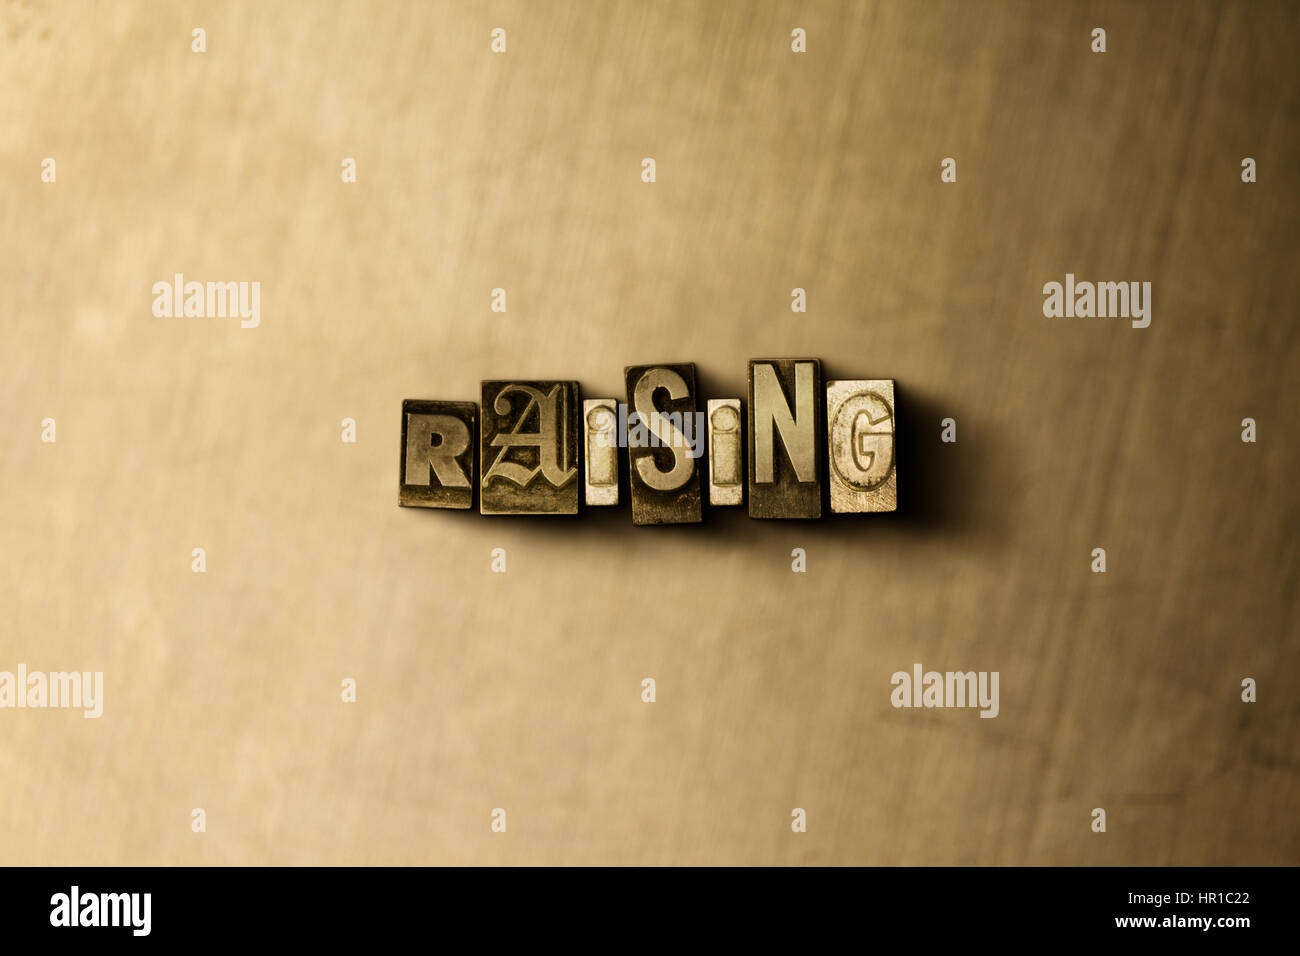 RAISING - close-up of grungy vintage typeset word on metal backdrop. Royalty free stock - 3D rendered stock image. - Stock Image